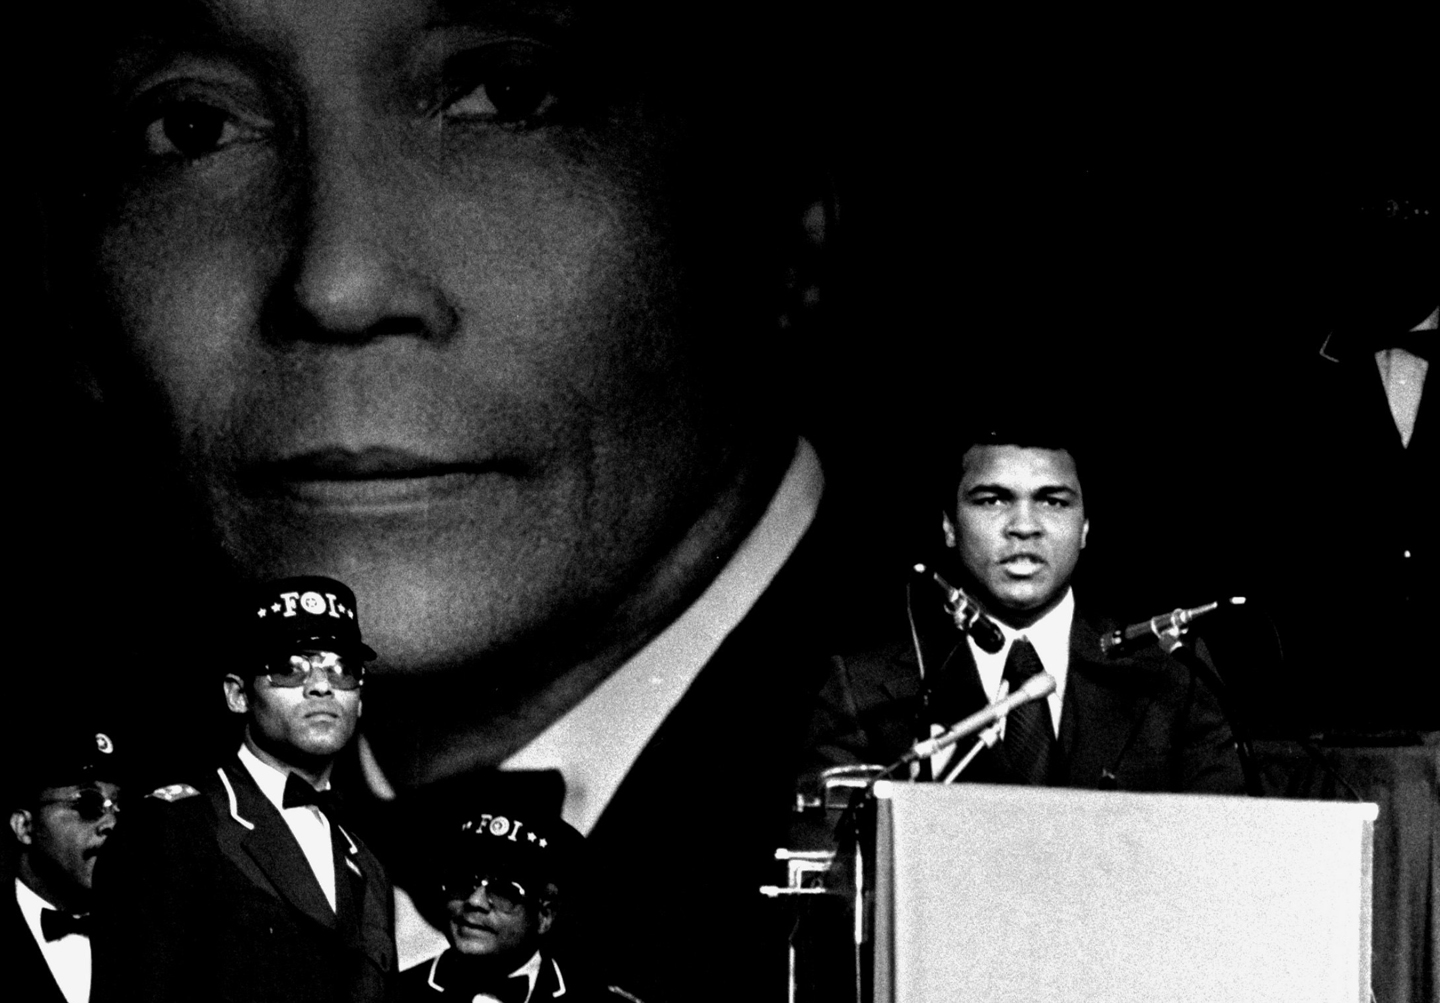 World heavyweight champion Muhammad Ali, is shown addressing a meeting of the Nation of Islam in Chicago, February 26, 1975. To the immediate left of the rostrum is Wallace Muhammad, newly chosen Spiritual Leader and Administrator of the Nation of Islam, or Black Muslims. Honorable Wallace replaces his late father, Elijah Muhammad, whose picture dominates the scene. Ceremonies took place during Muslim Savior Day.